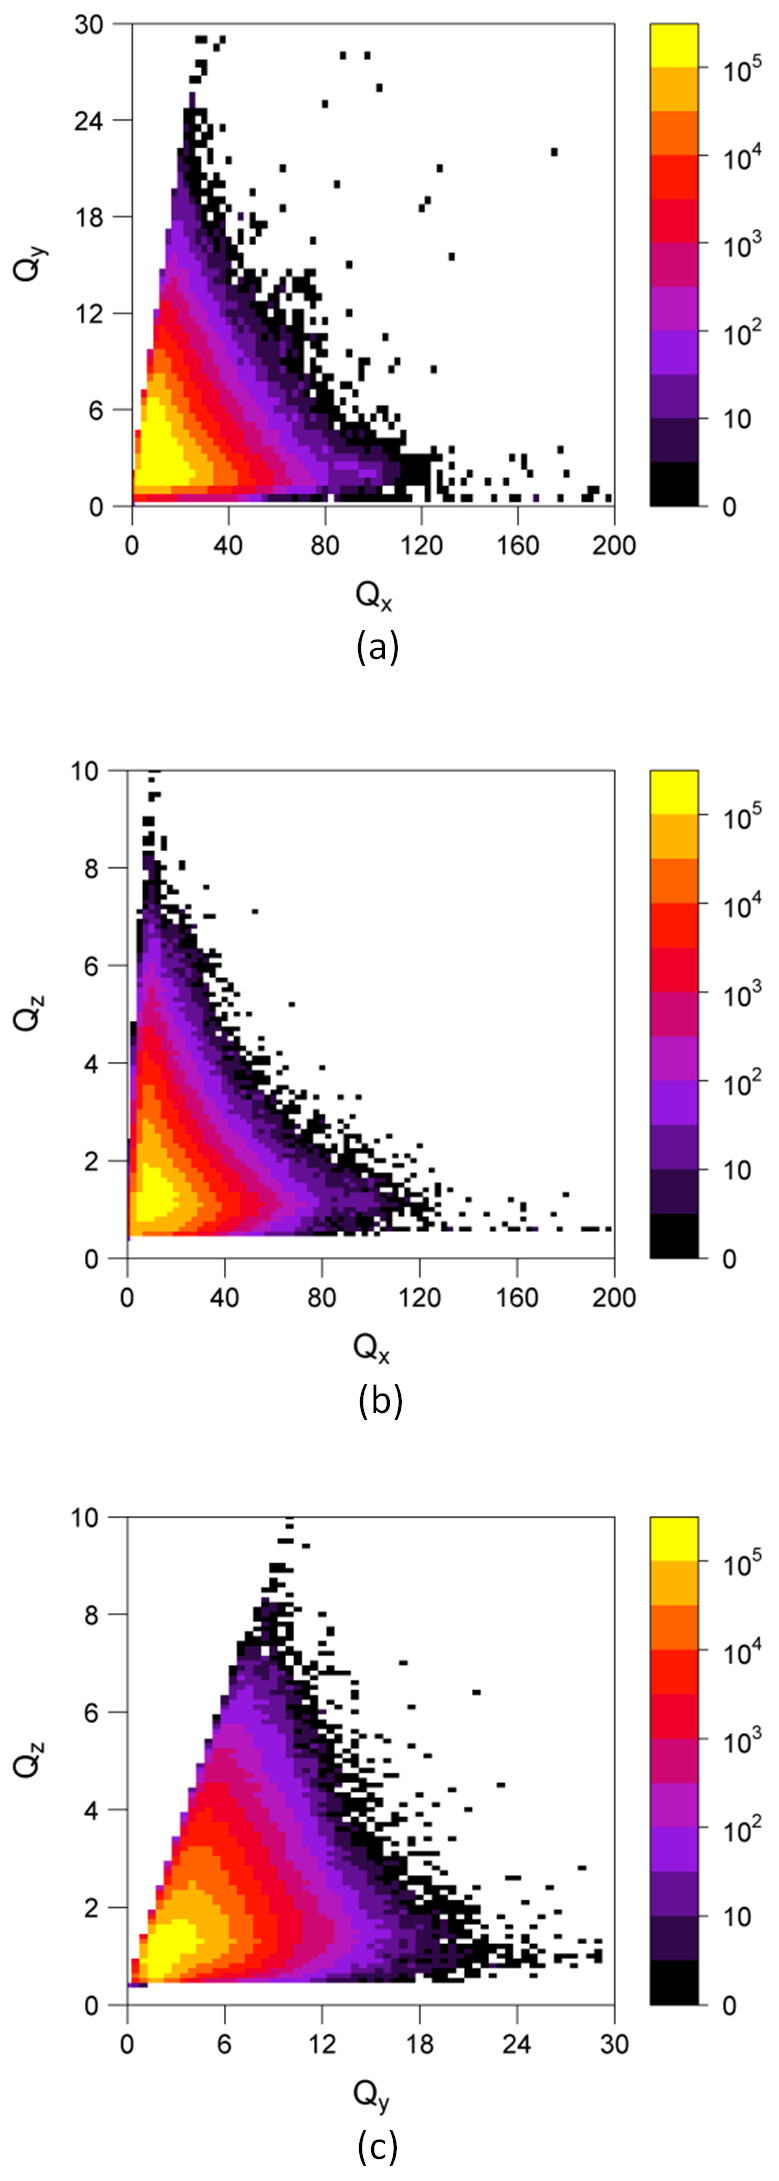 http://static-content.springer.com/image/art%3A10.1186%2F1758-2946-3-25/MediaObjects/13321_2011_Article_208_Fig3_HTML.jpg